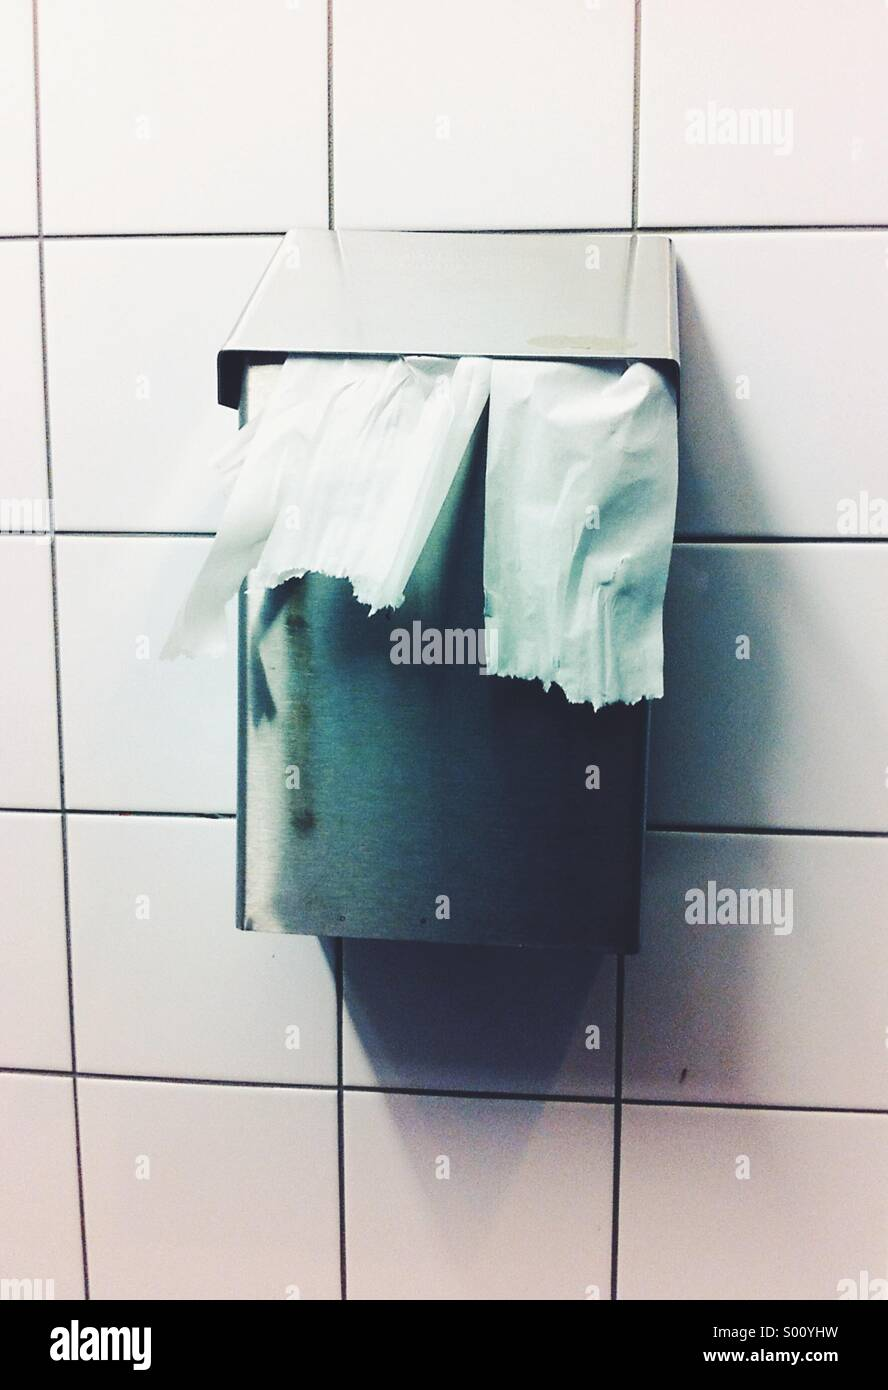 Toilet tissue hangs from a waste receptacle on a white tile wall in a public washroom. - Stock Image